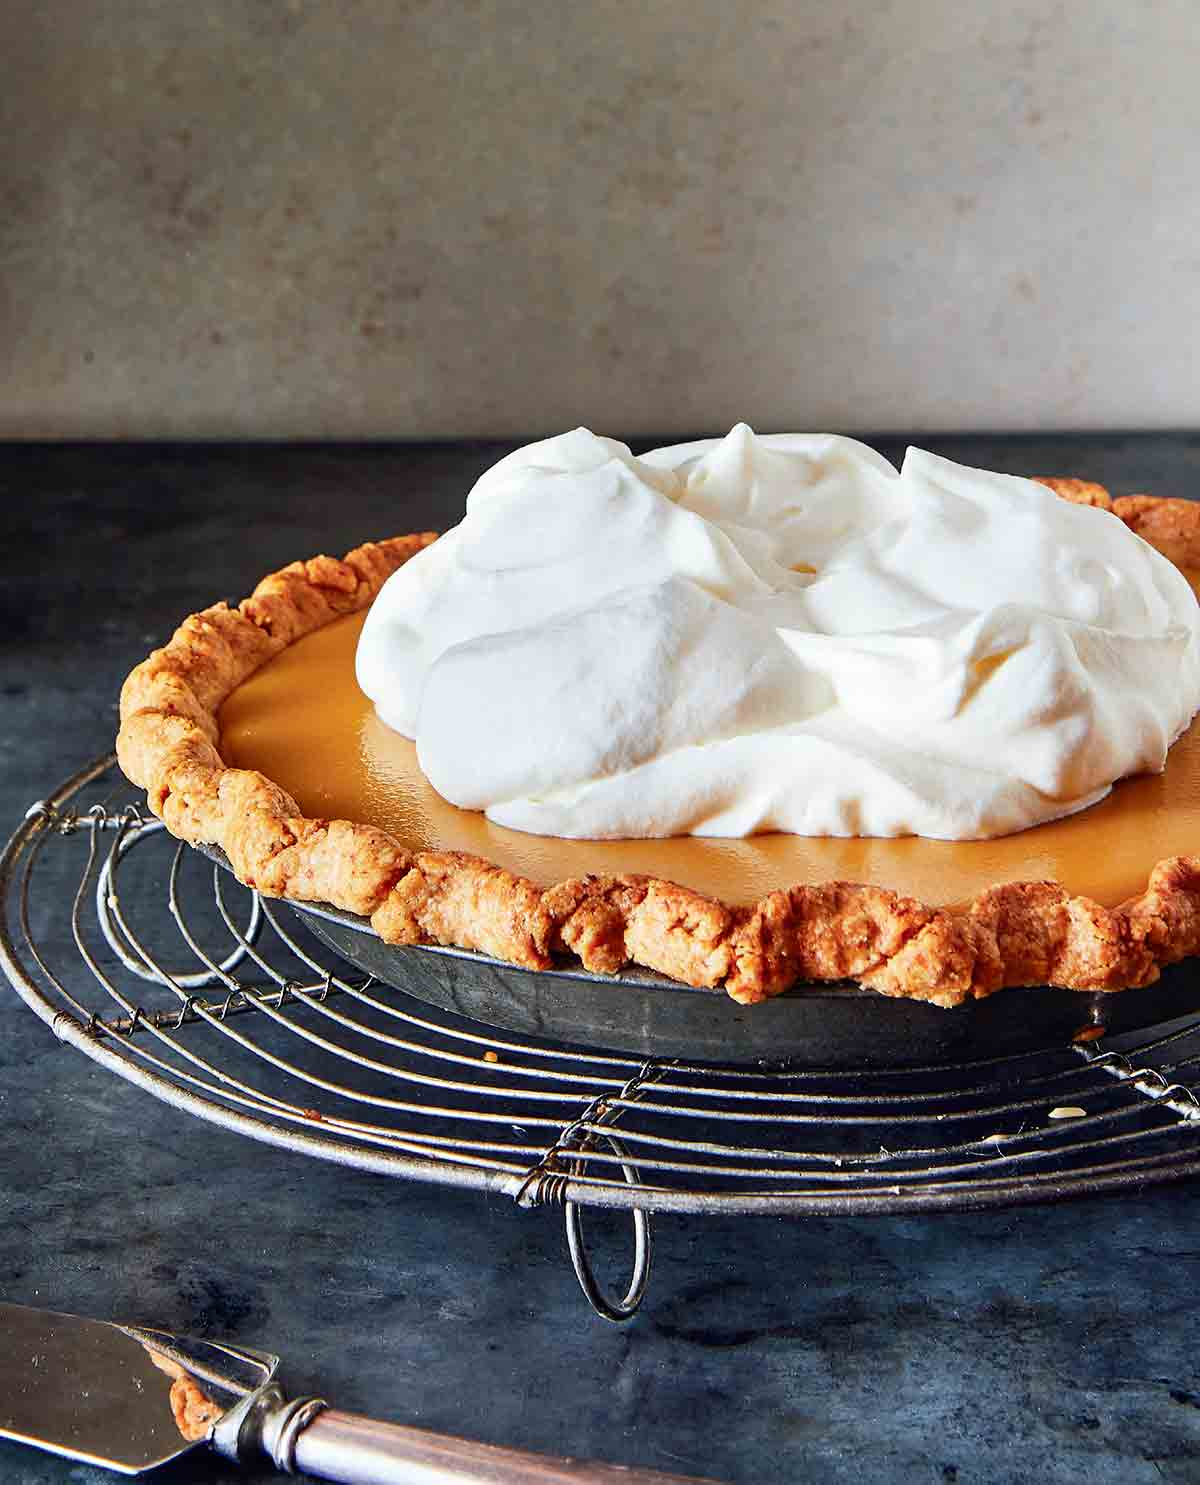 A whole maple cream pie, topped with whipped cream on a round wire rack.